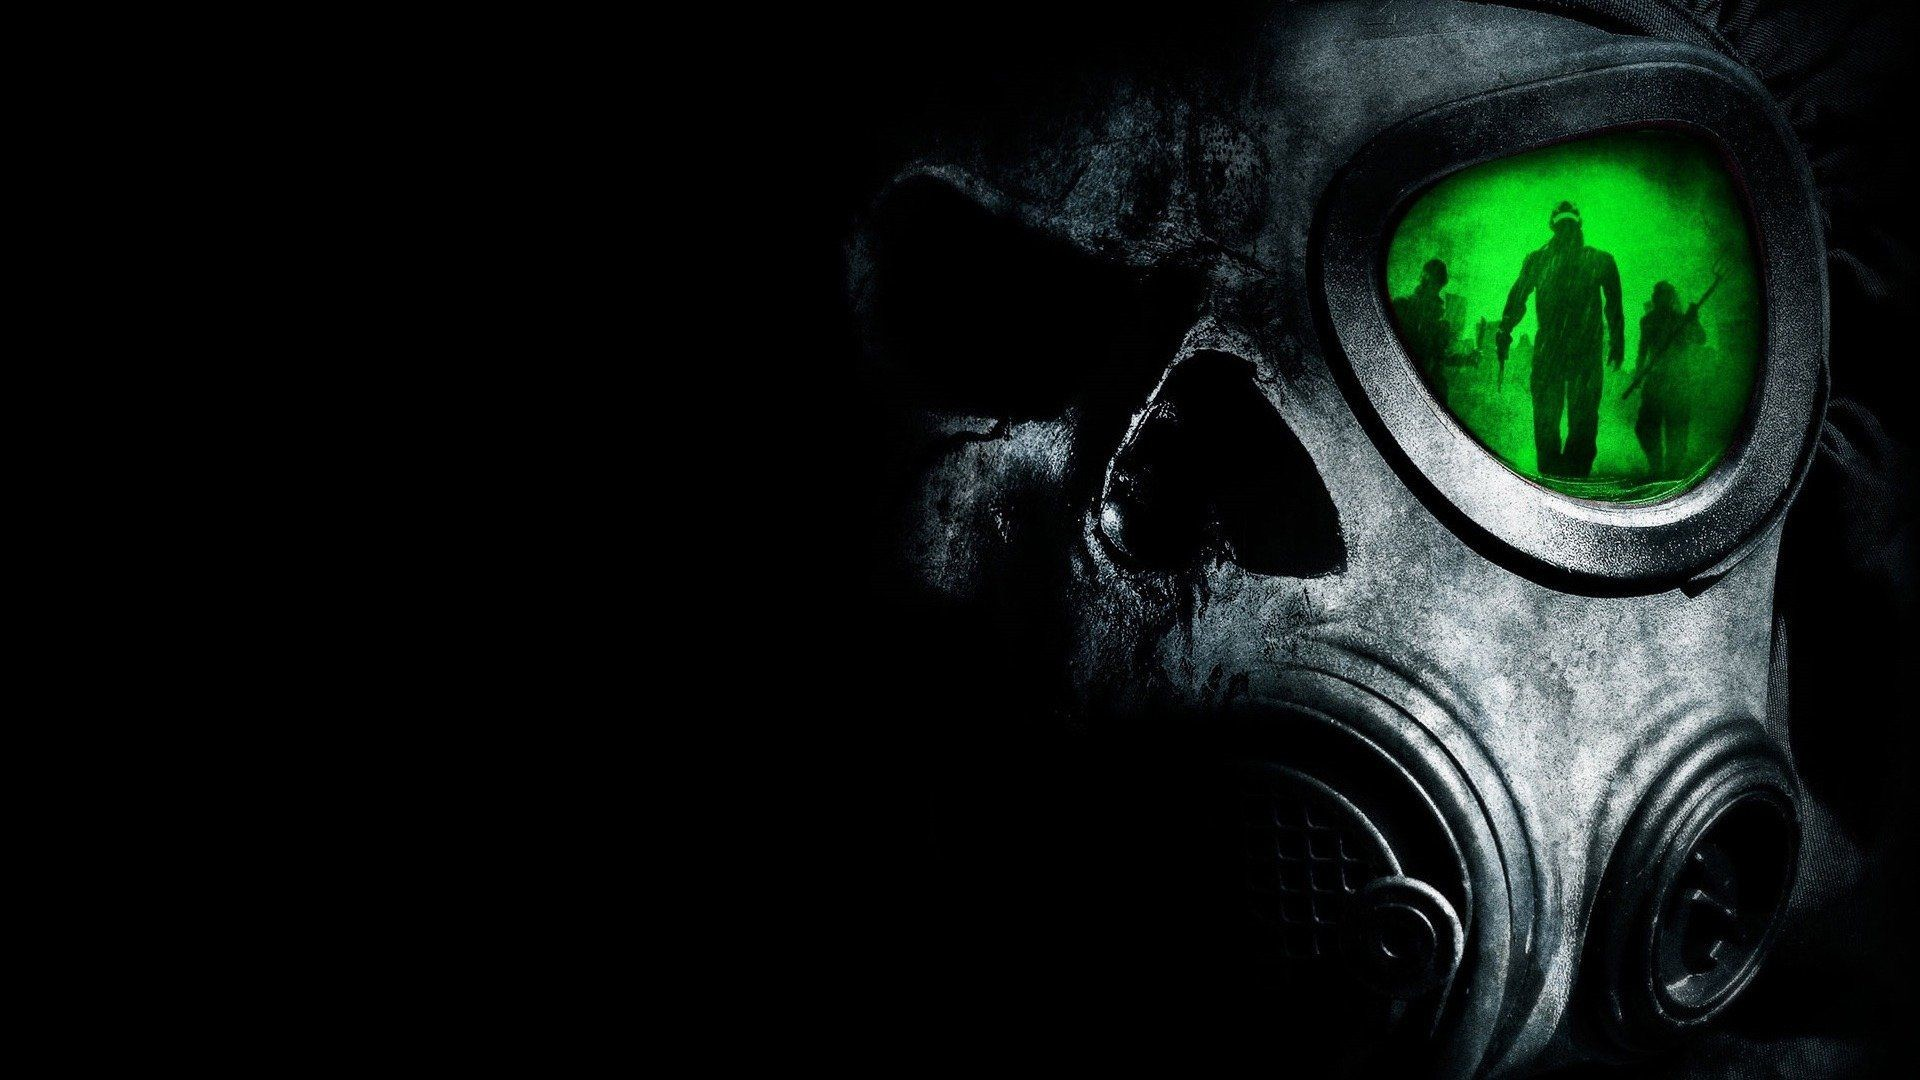 Res: 1920x1080, https://www.walldevil.com/wallpapers/a71/hye-windows-jin-wallpaper- wallpapers-song-skull-green-biohazard-theme-images.jpg